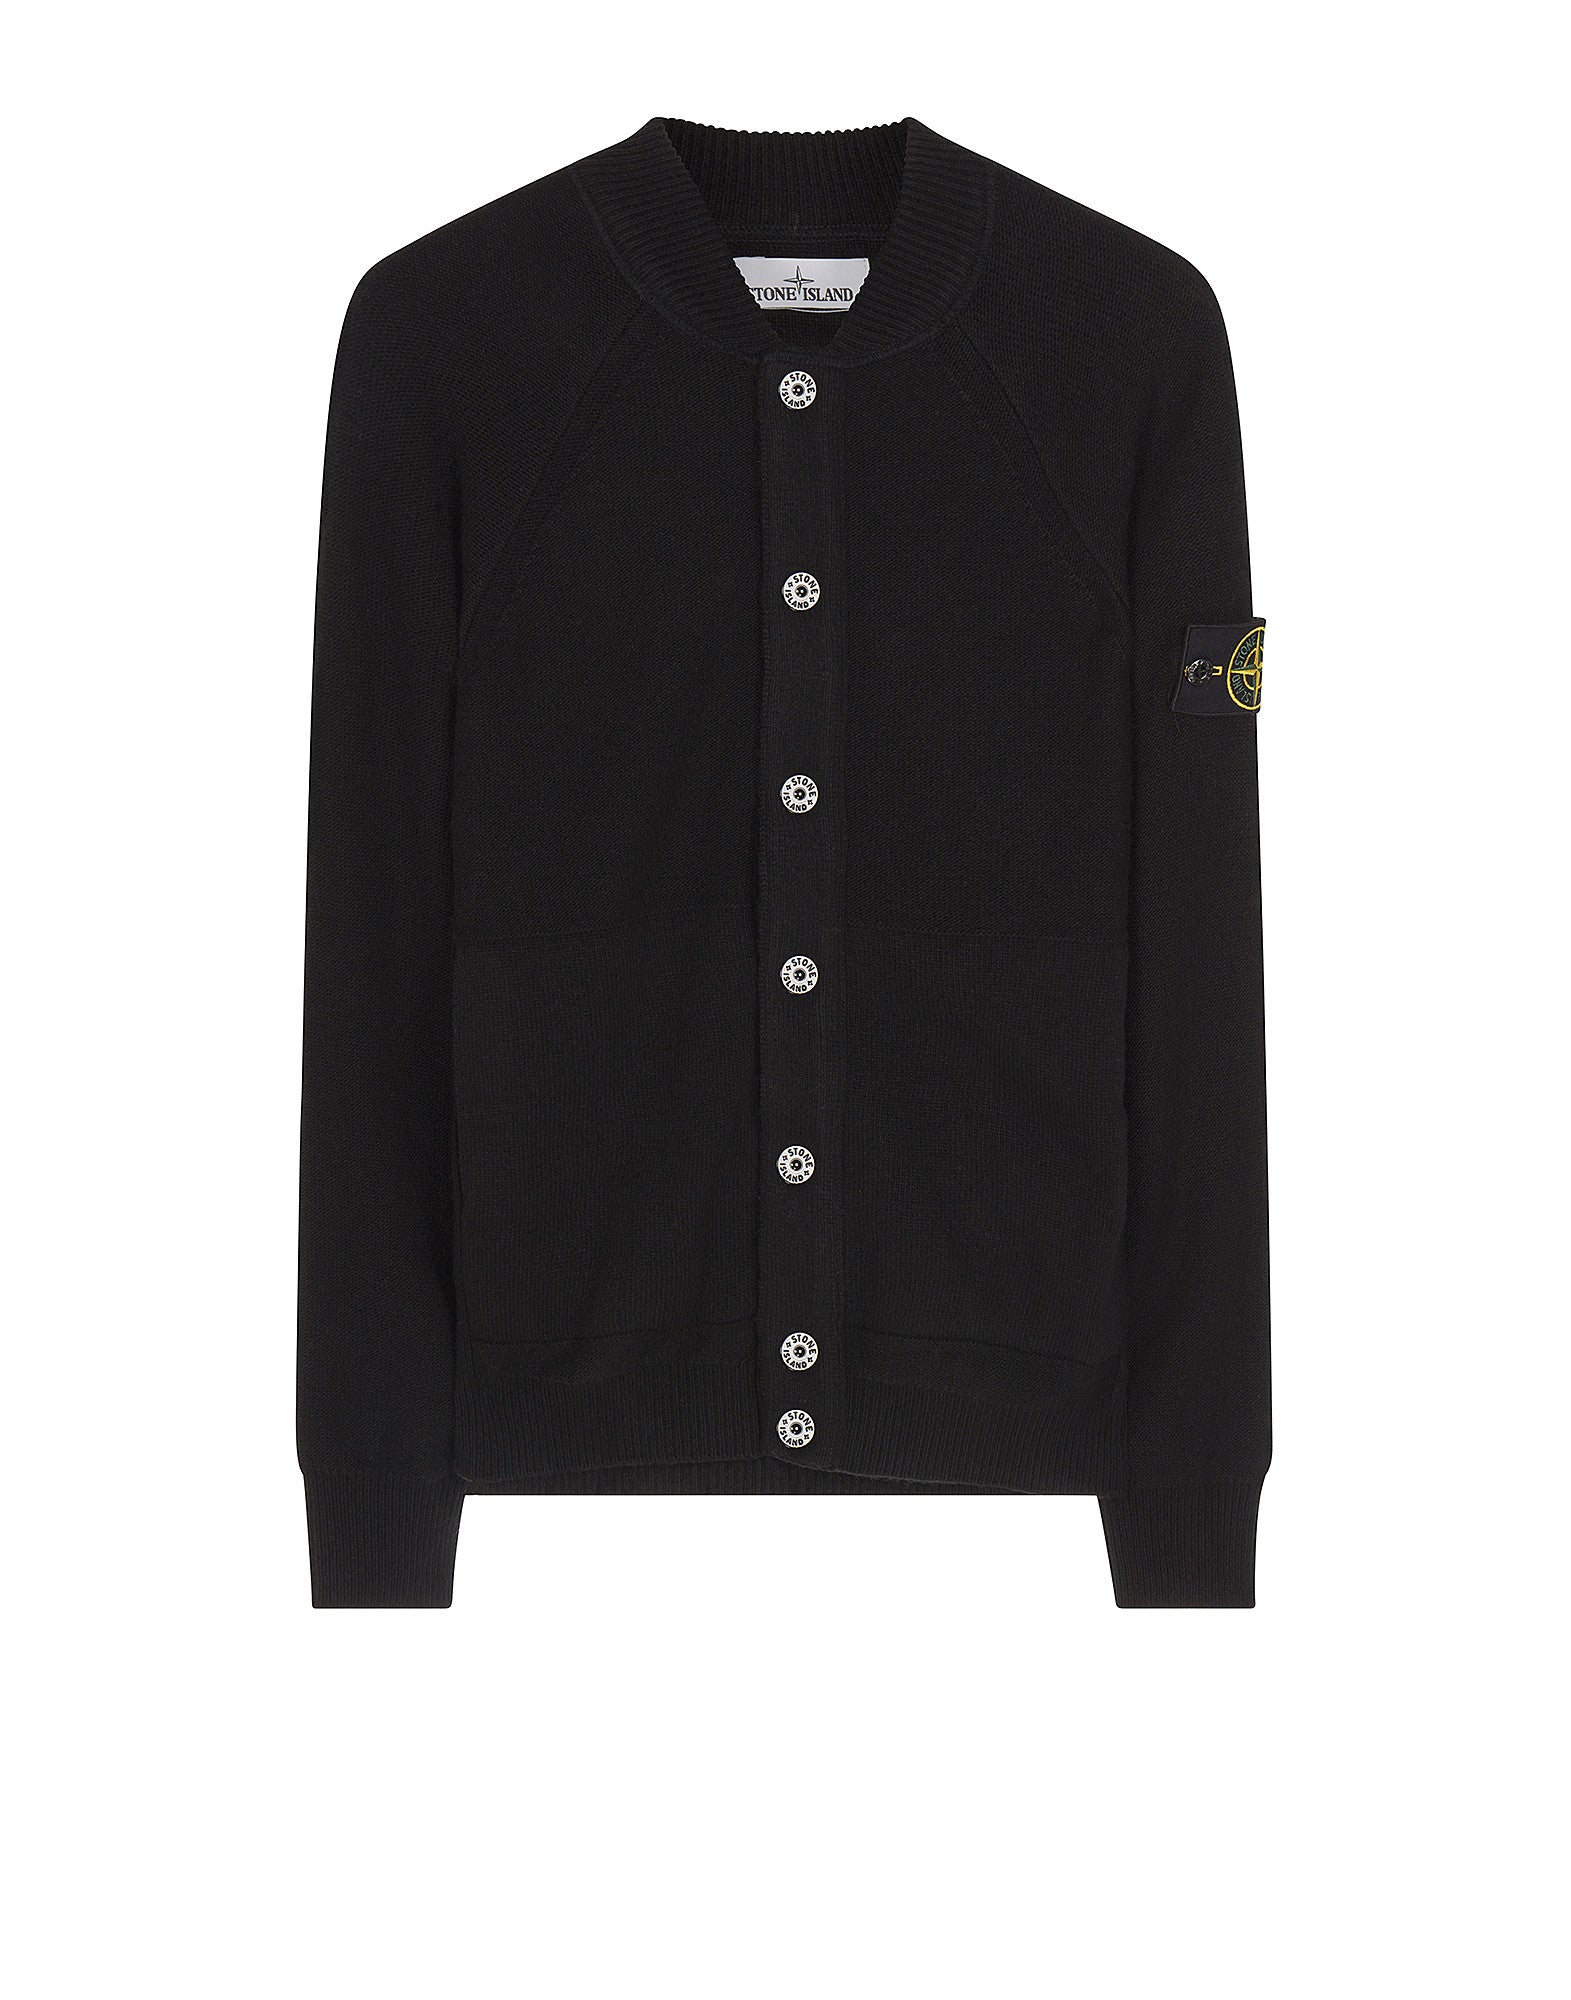 570D9 Cardigan in Black